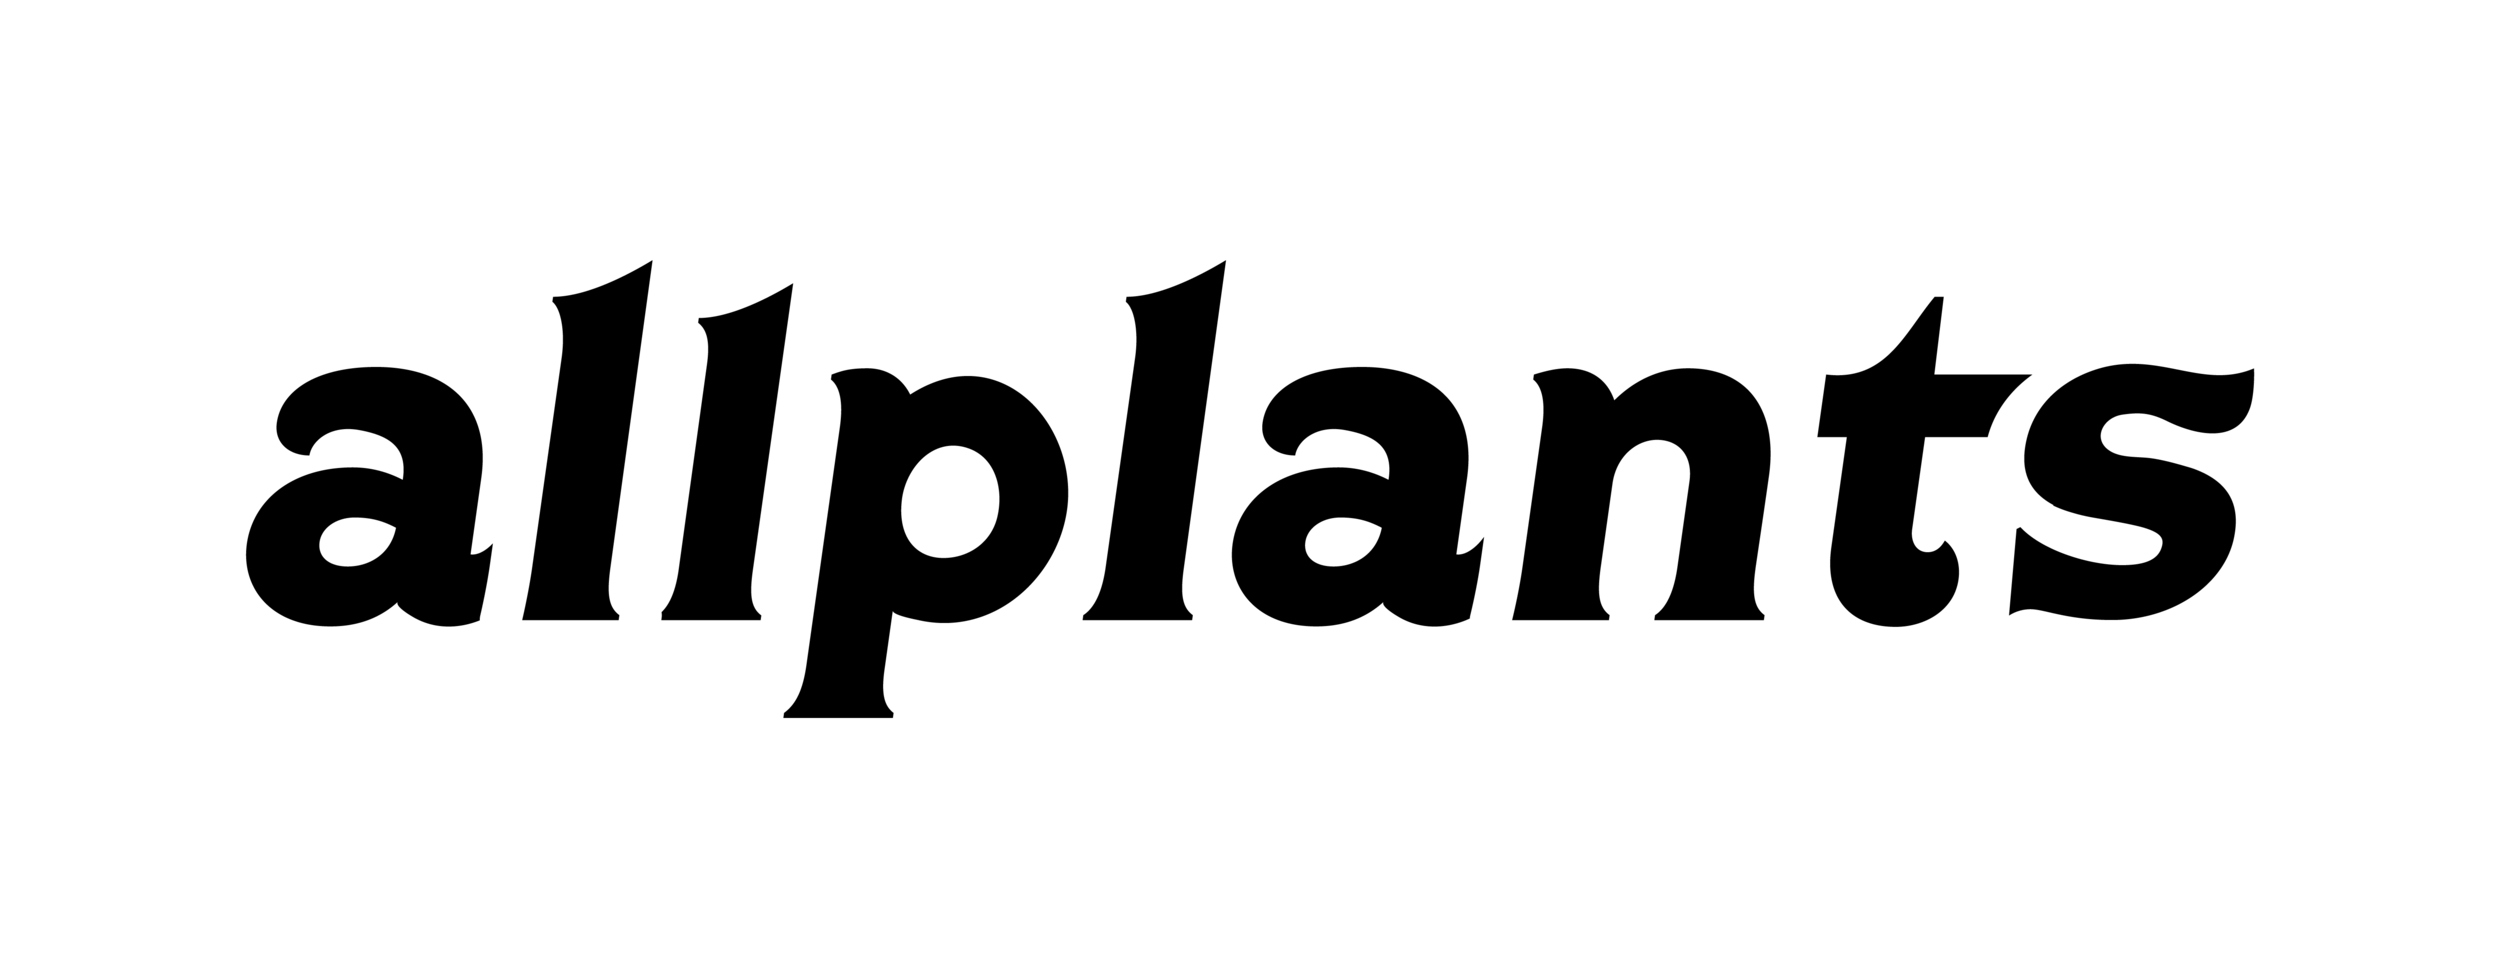 Allplants-Logo-Black.png